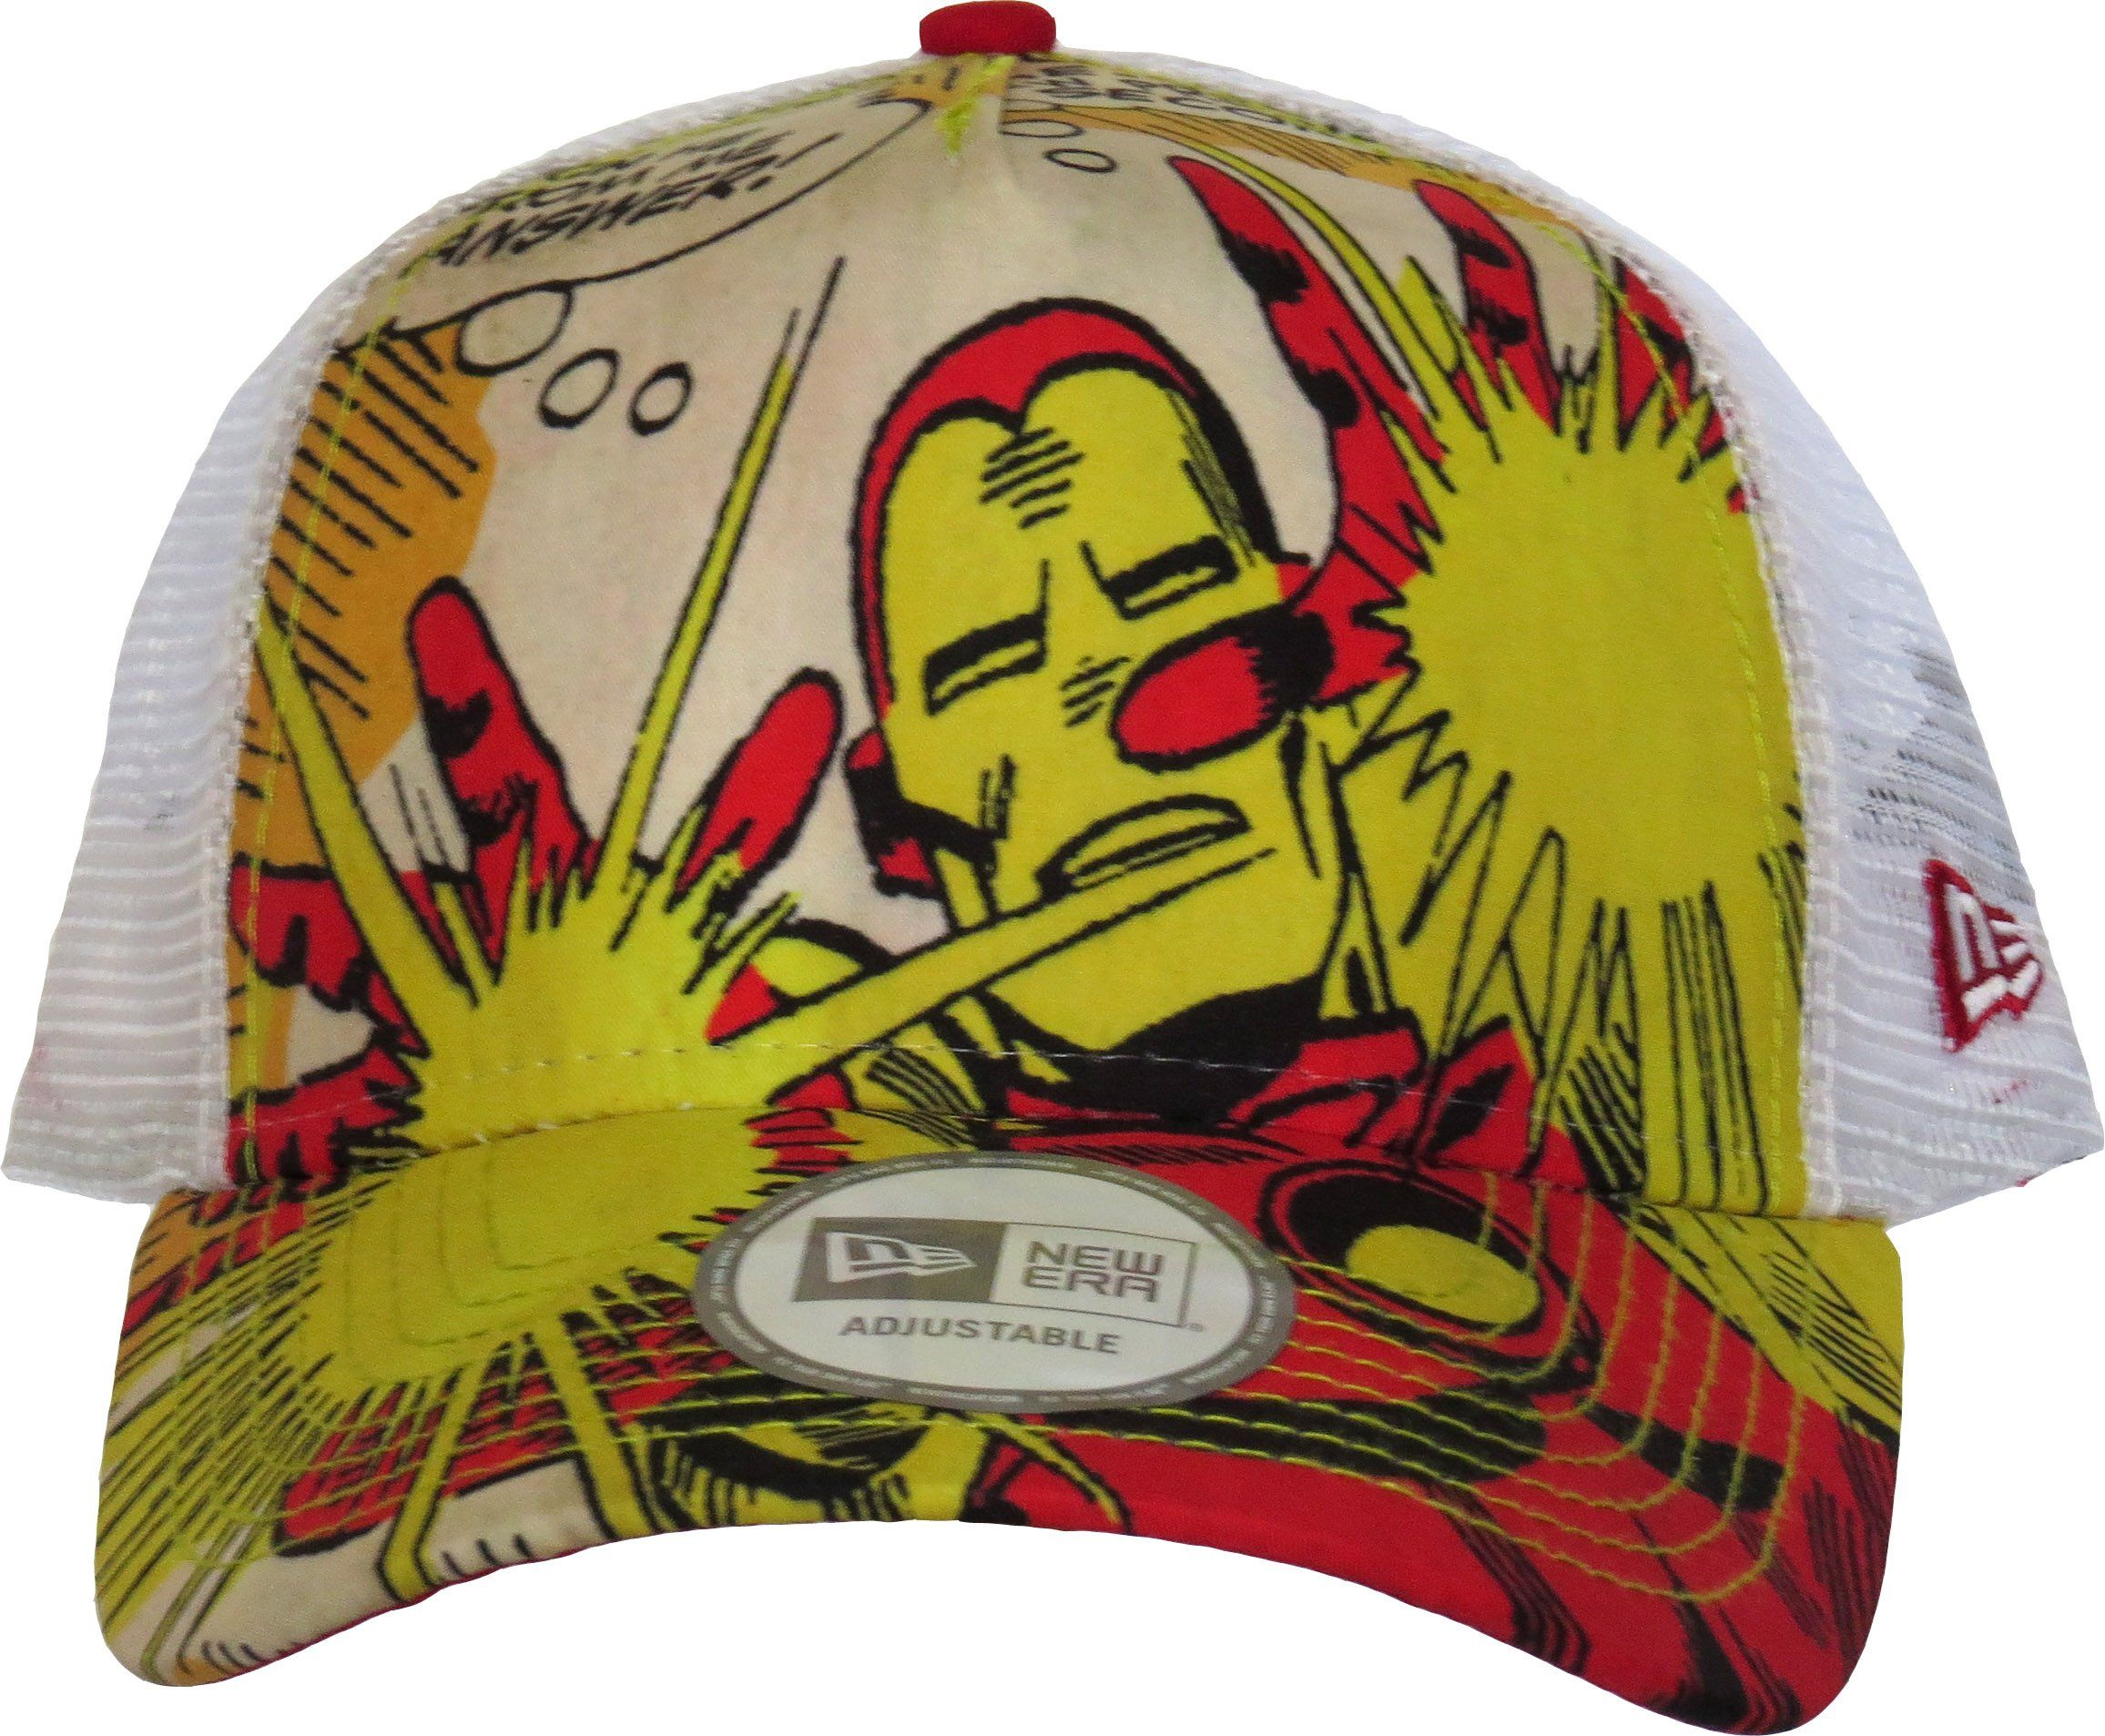 marvel avengers new era trucker cap iron man front image 427cb109c006